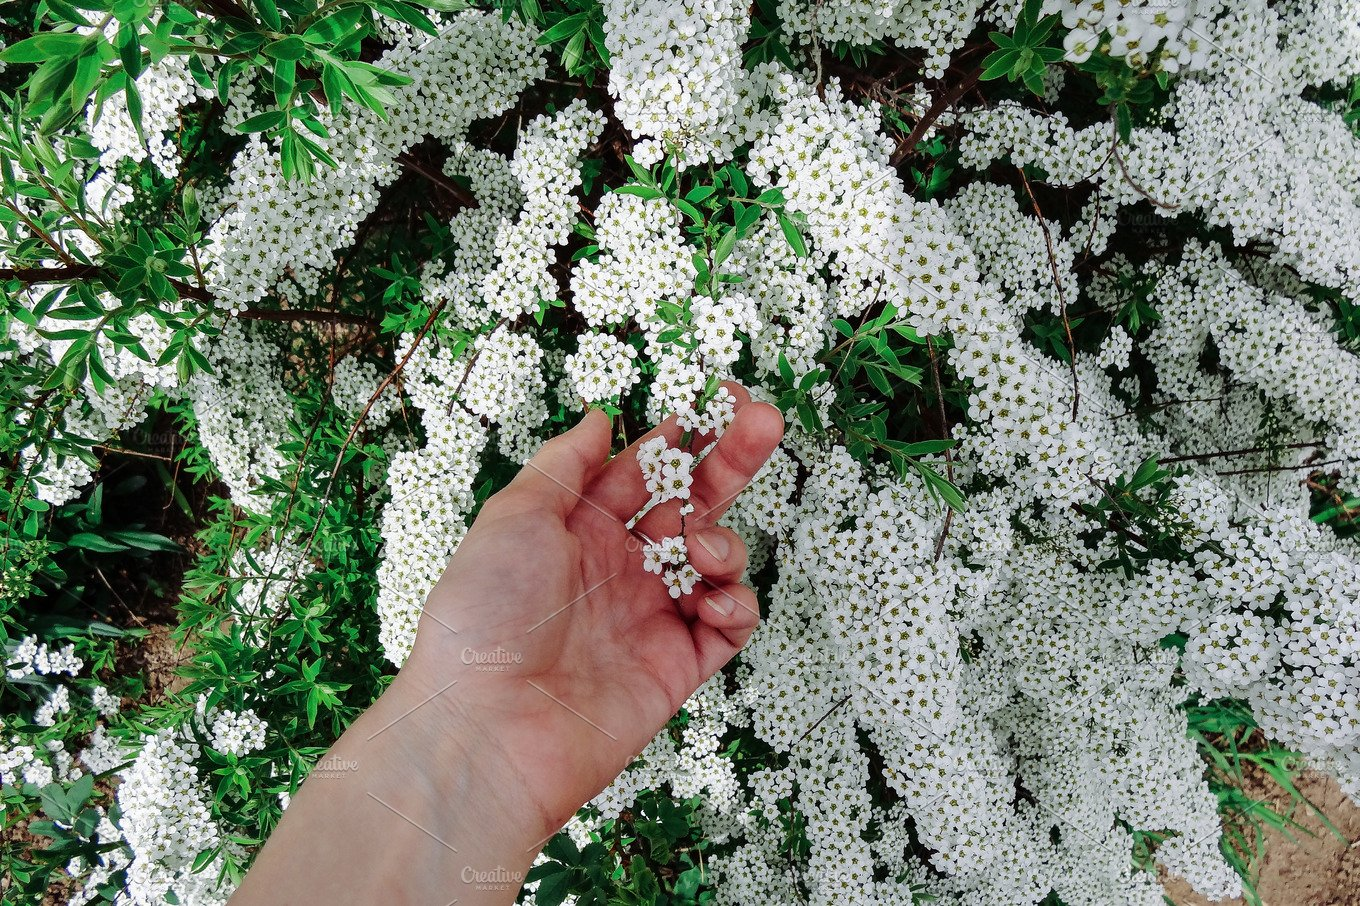 Spiraea Alpine Meadowsweet Spring Flower White Blossoming Shrub